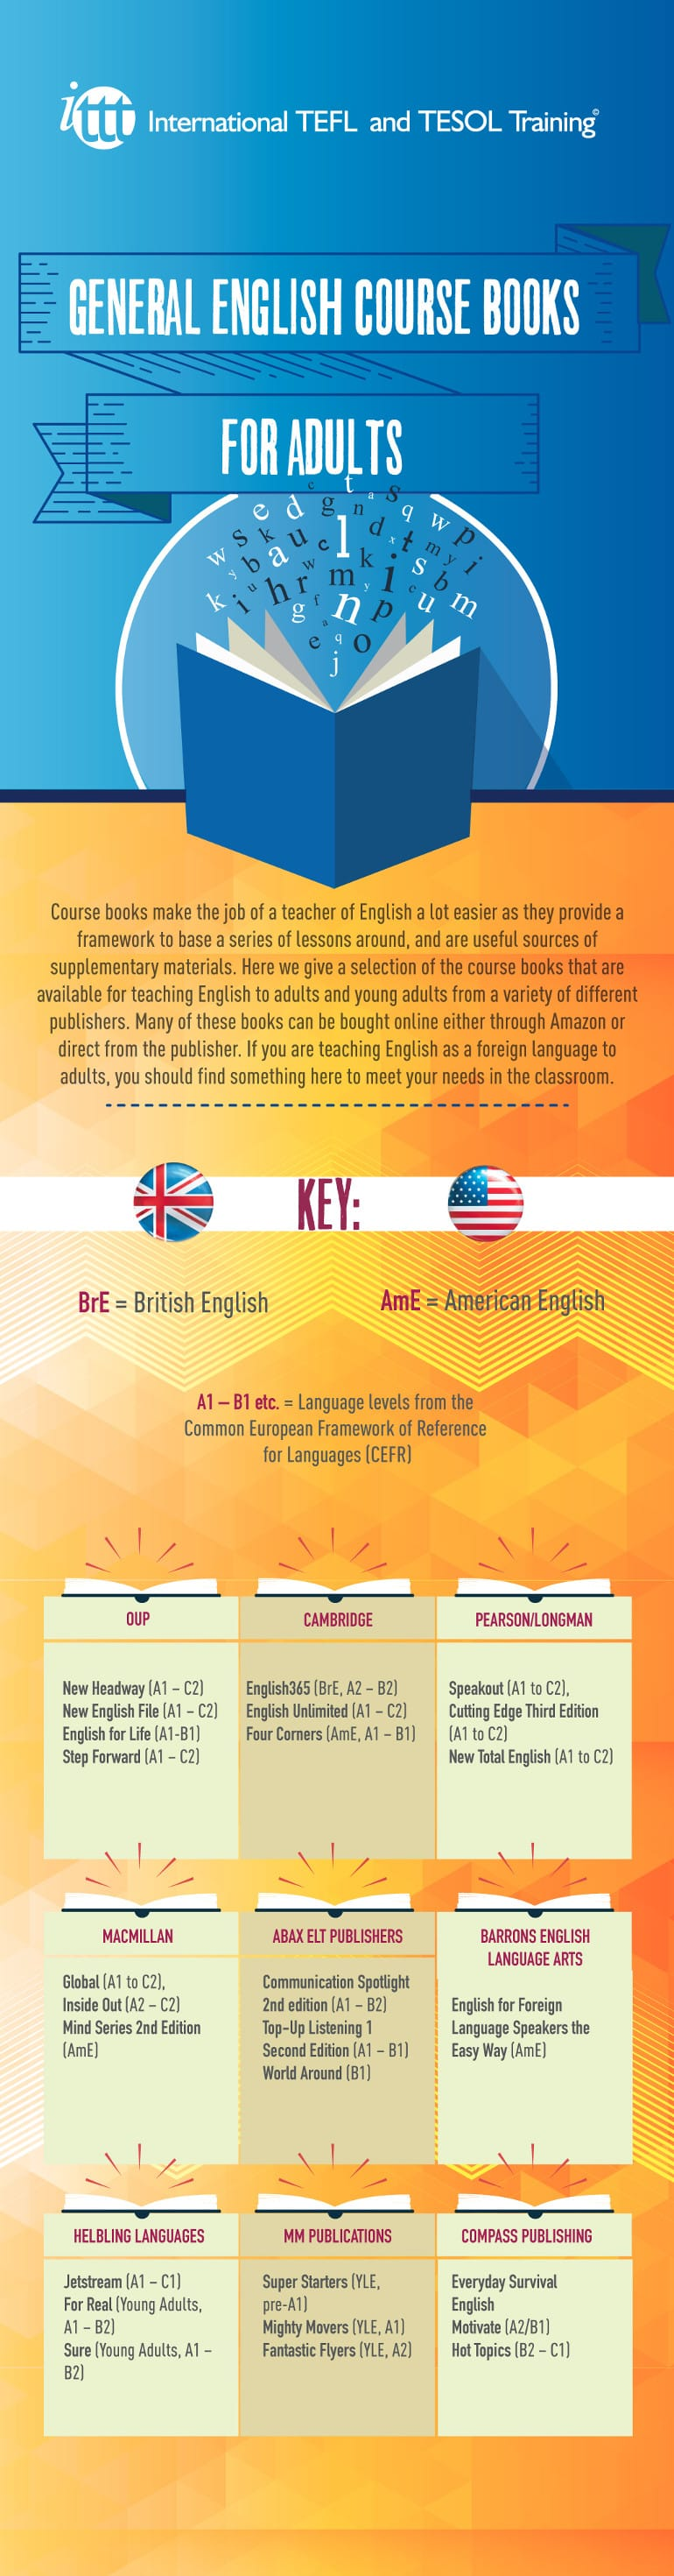 disadvantages of esl course books These are articles, lessons and handouts from previous issues of the internet tesl journal which is a monthy web magazine for teachers of english as a second language.